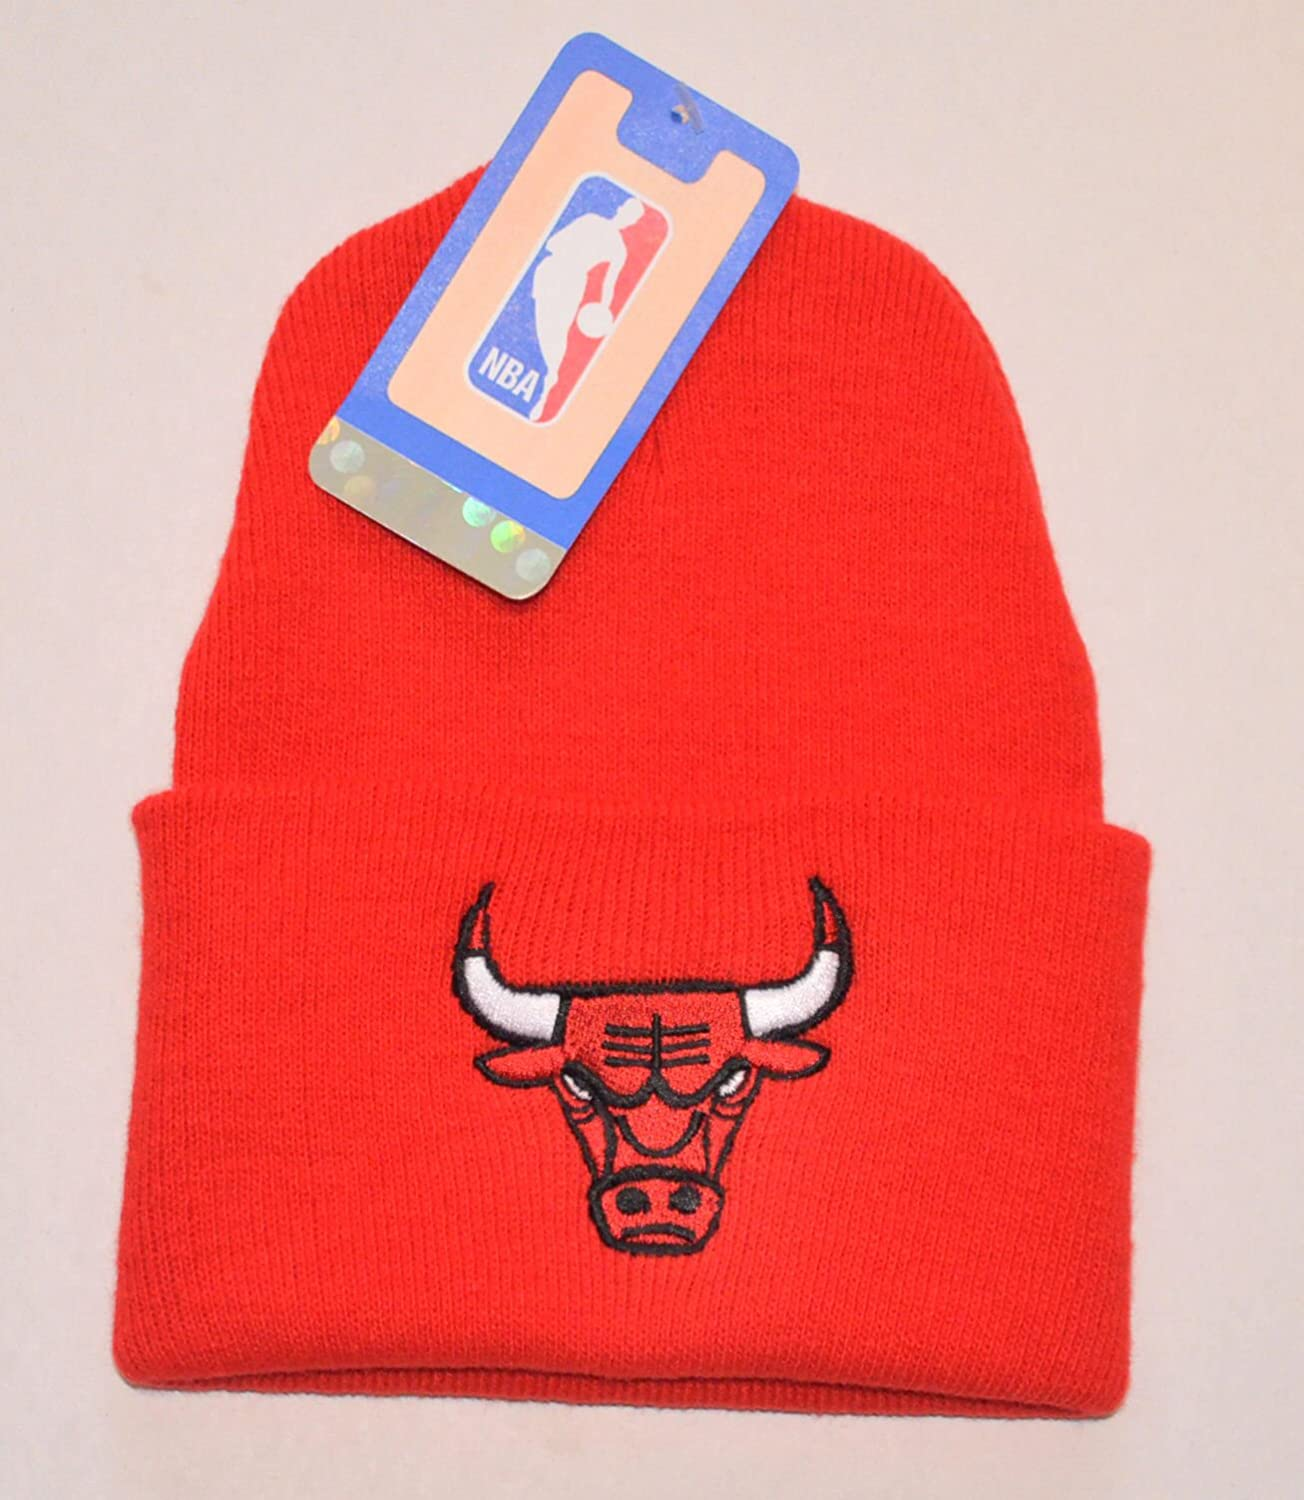 Chicago Bulls Red Logo Only Beanie Hat - NBA Cuffed Knit Toque Cap unisex winter plicate baggy beanie knit crochet ski hat cap red